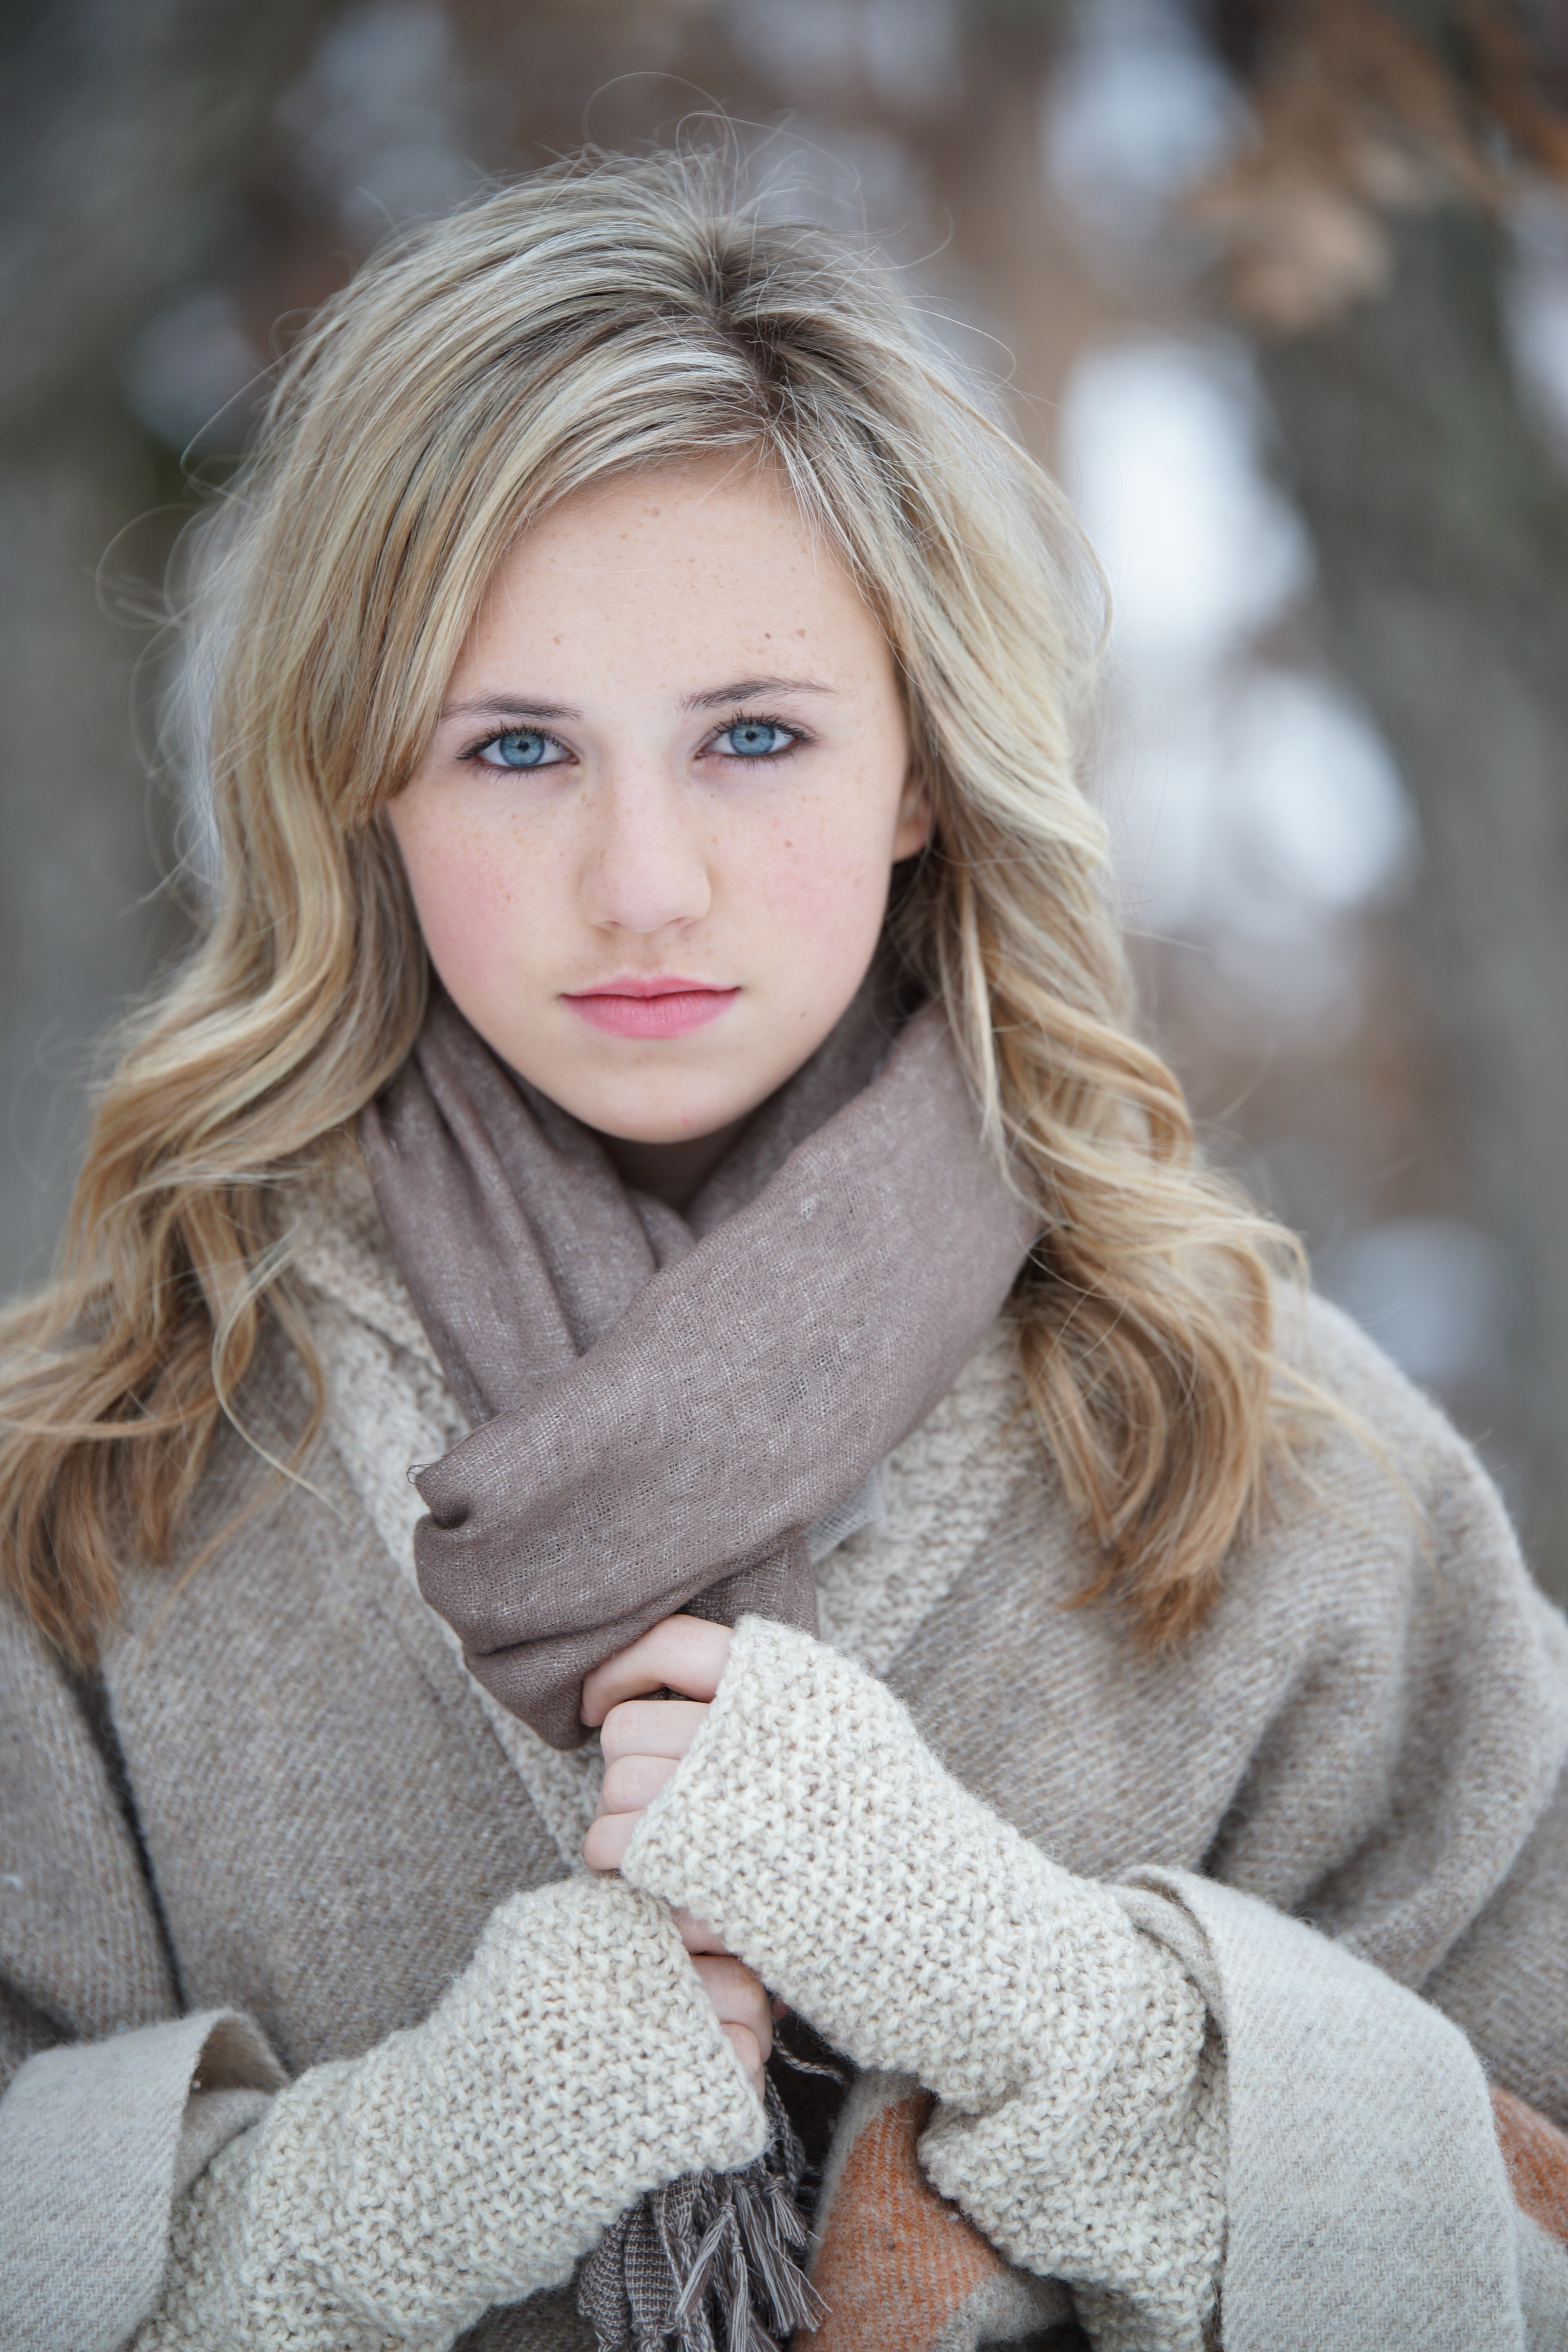 olivia_outdoor winter potrait